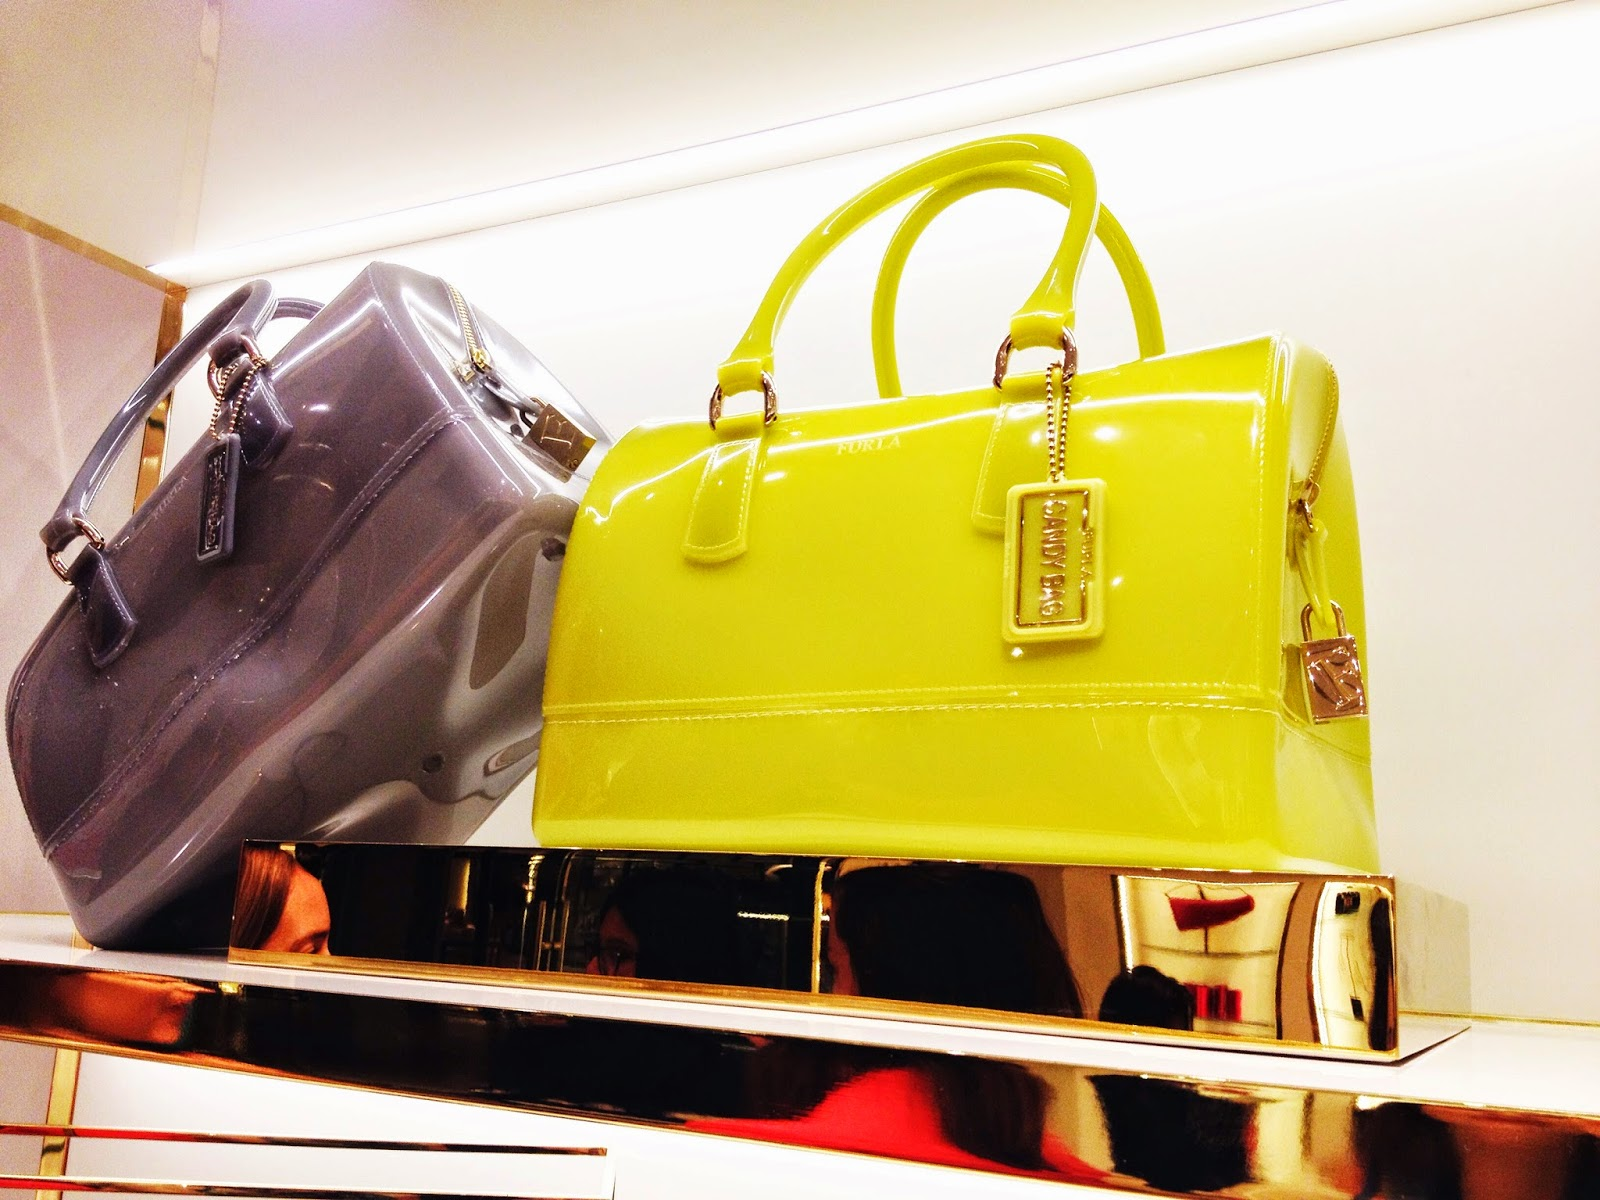 Furla Grand Opening Boston Blogger Event